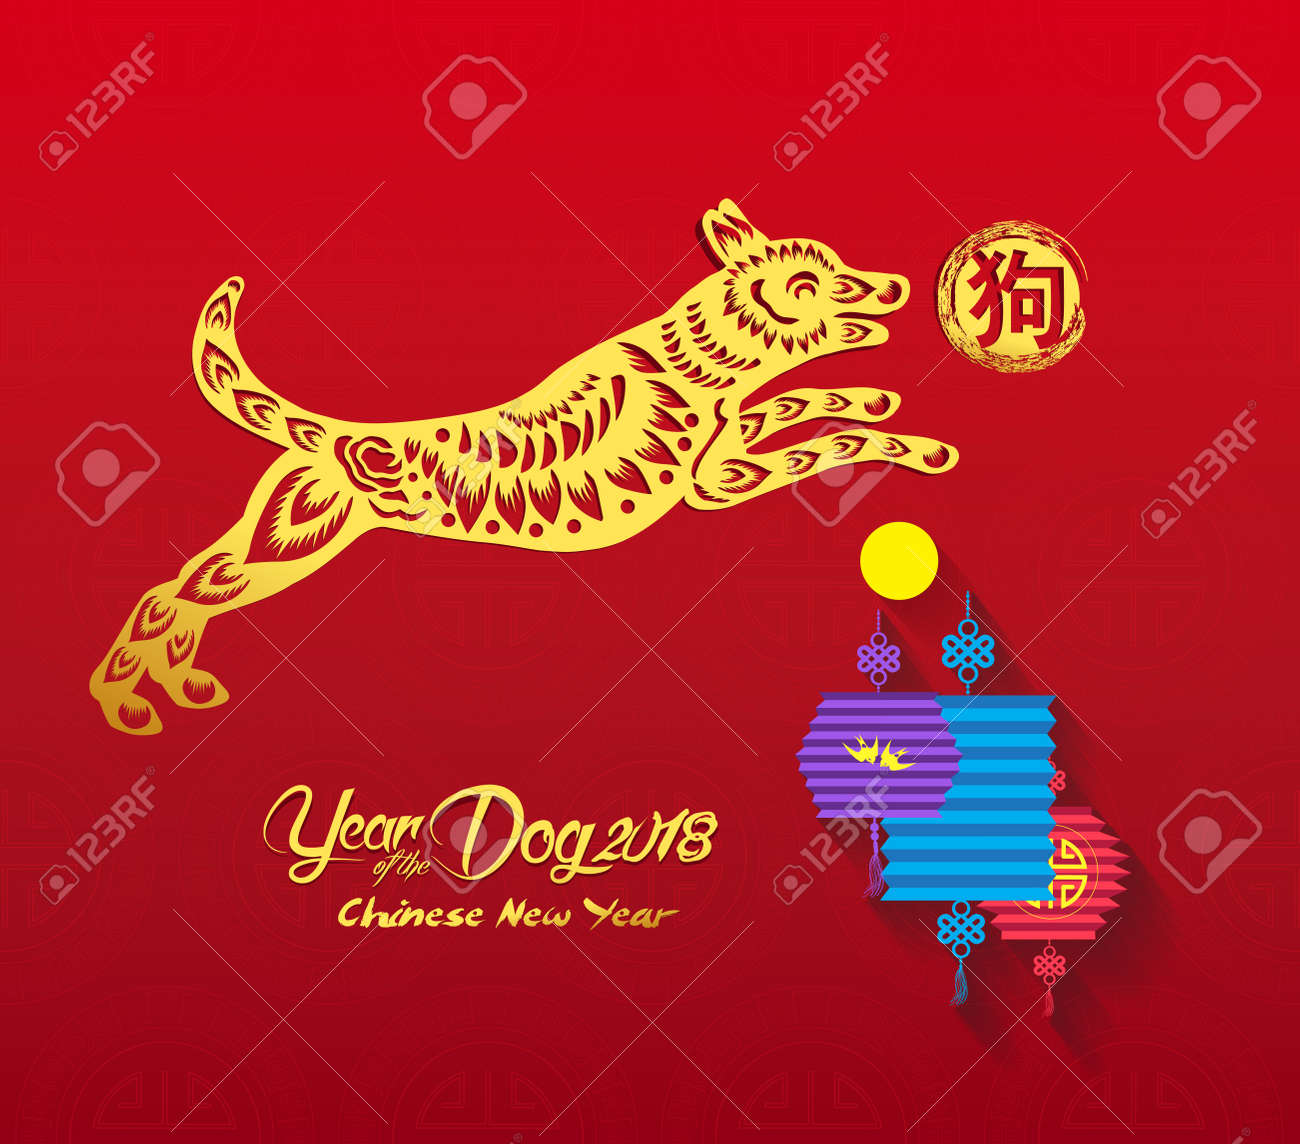 chinese new year 2018 background with lantern and full moon year of the dog